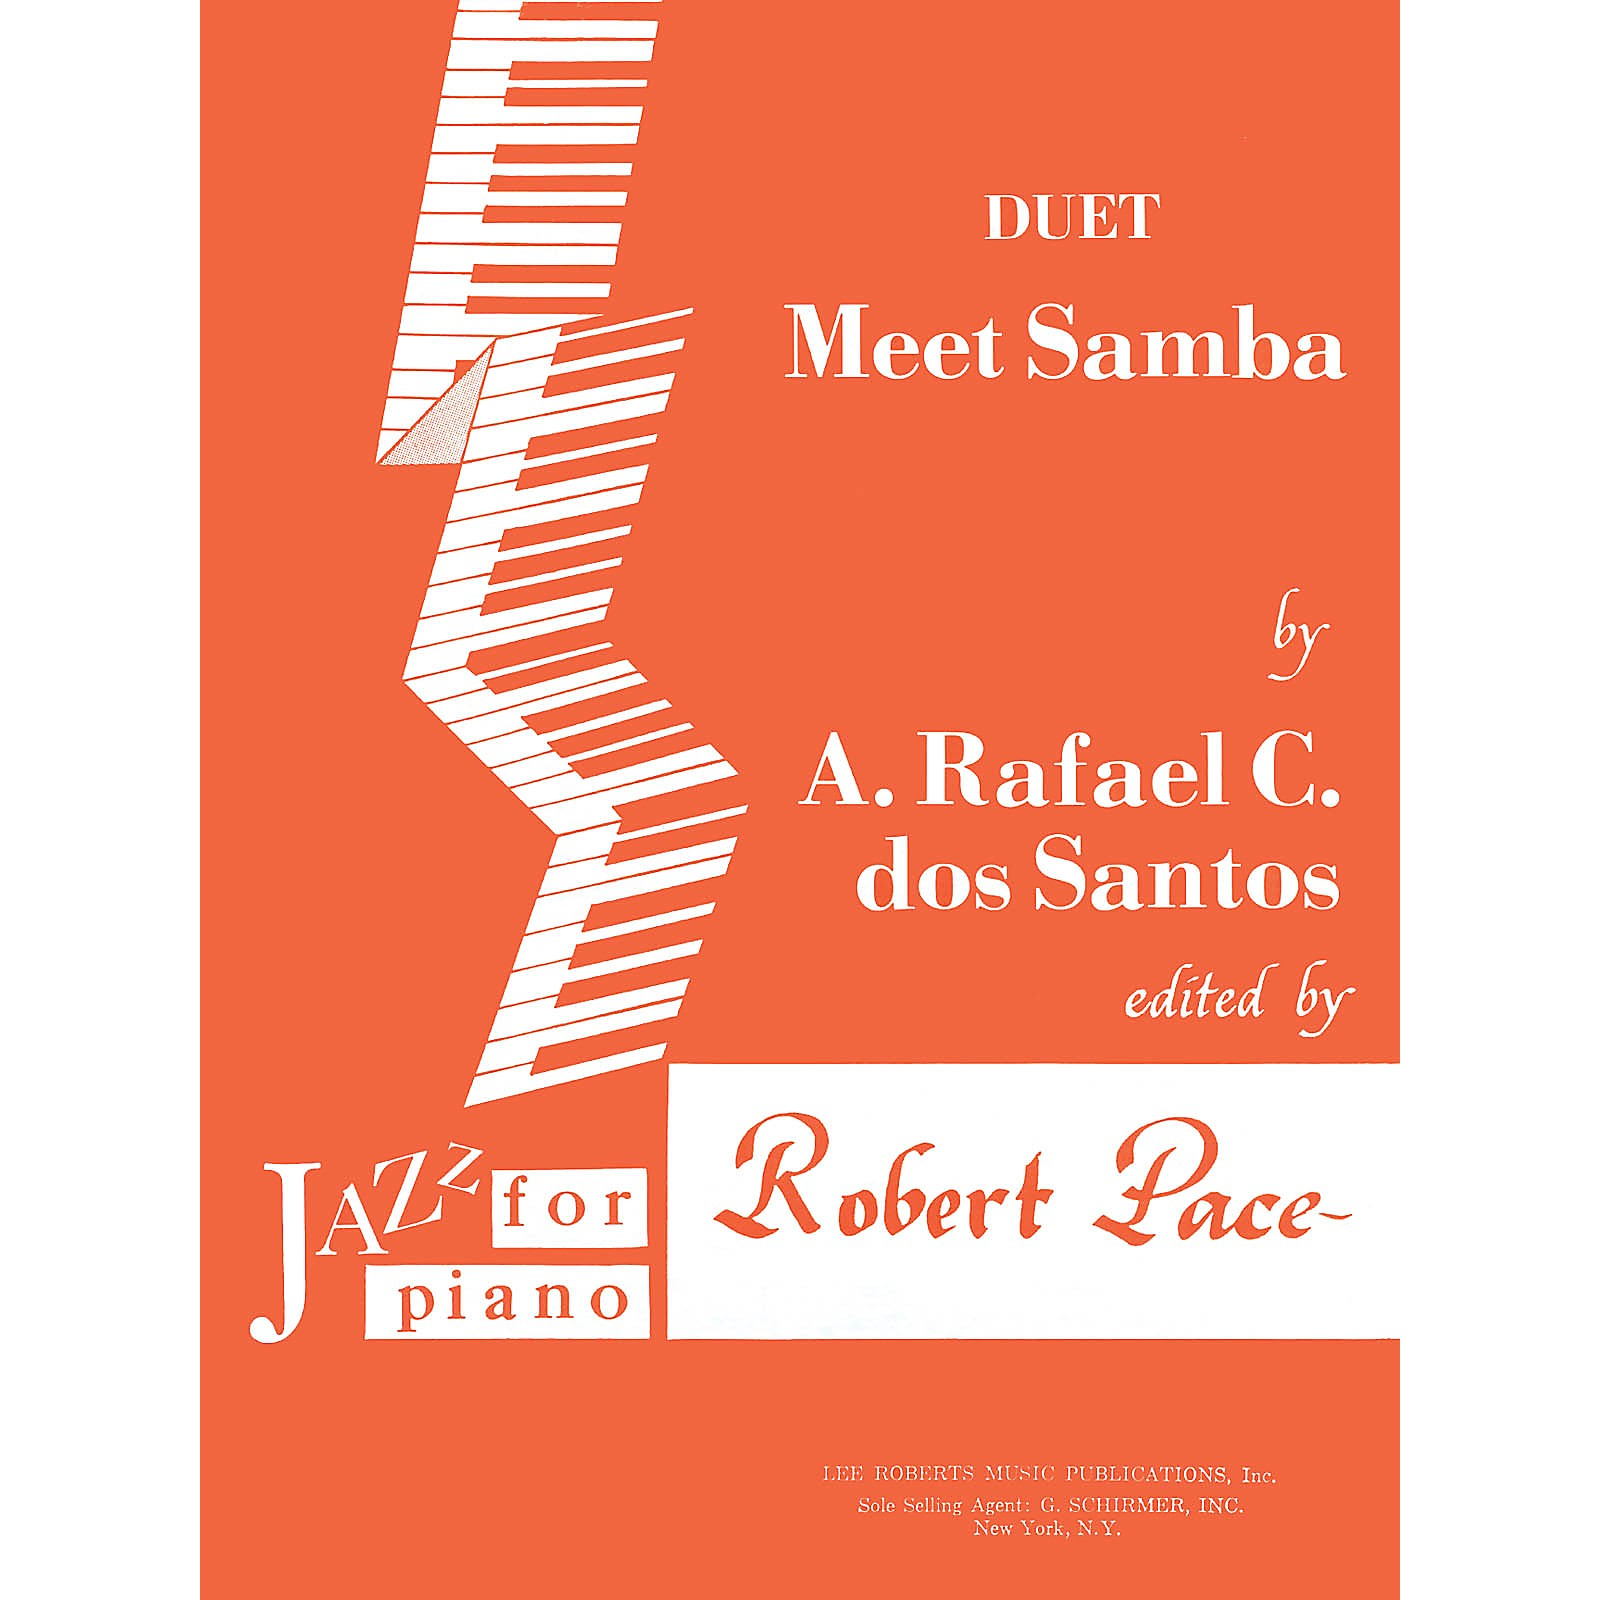 Lee Roberts Meet Samba (Levels II-III Duet) Pace Duet Piano Education Series Composed by A. Rafael C. dos Santos